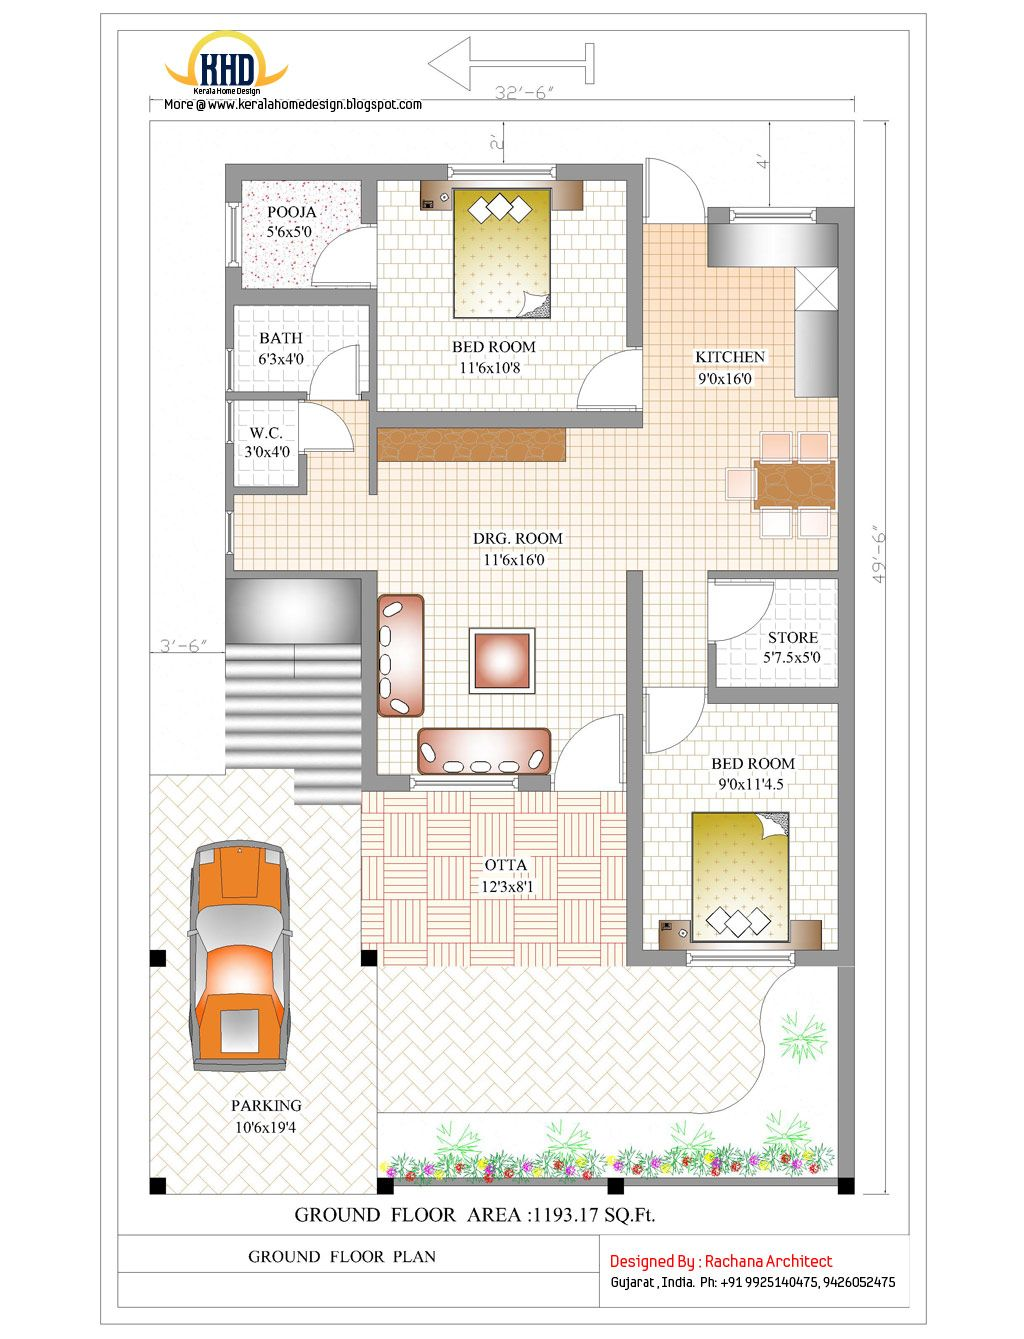 Home Design Plans Coloring Http Www Newhomebuyer Org Home